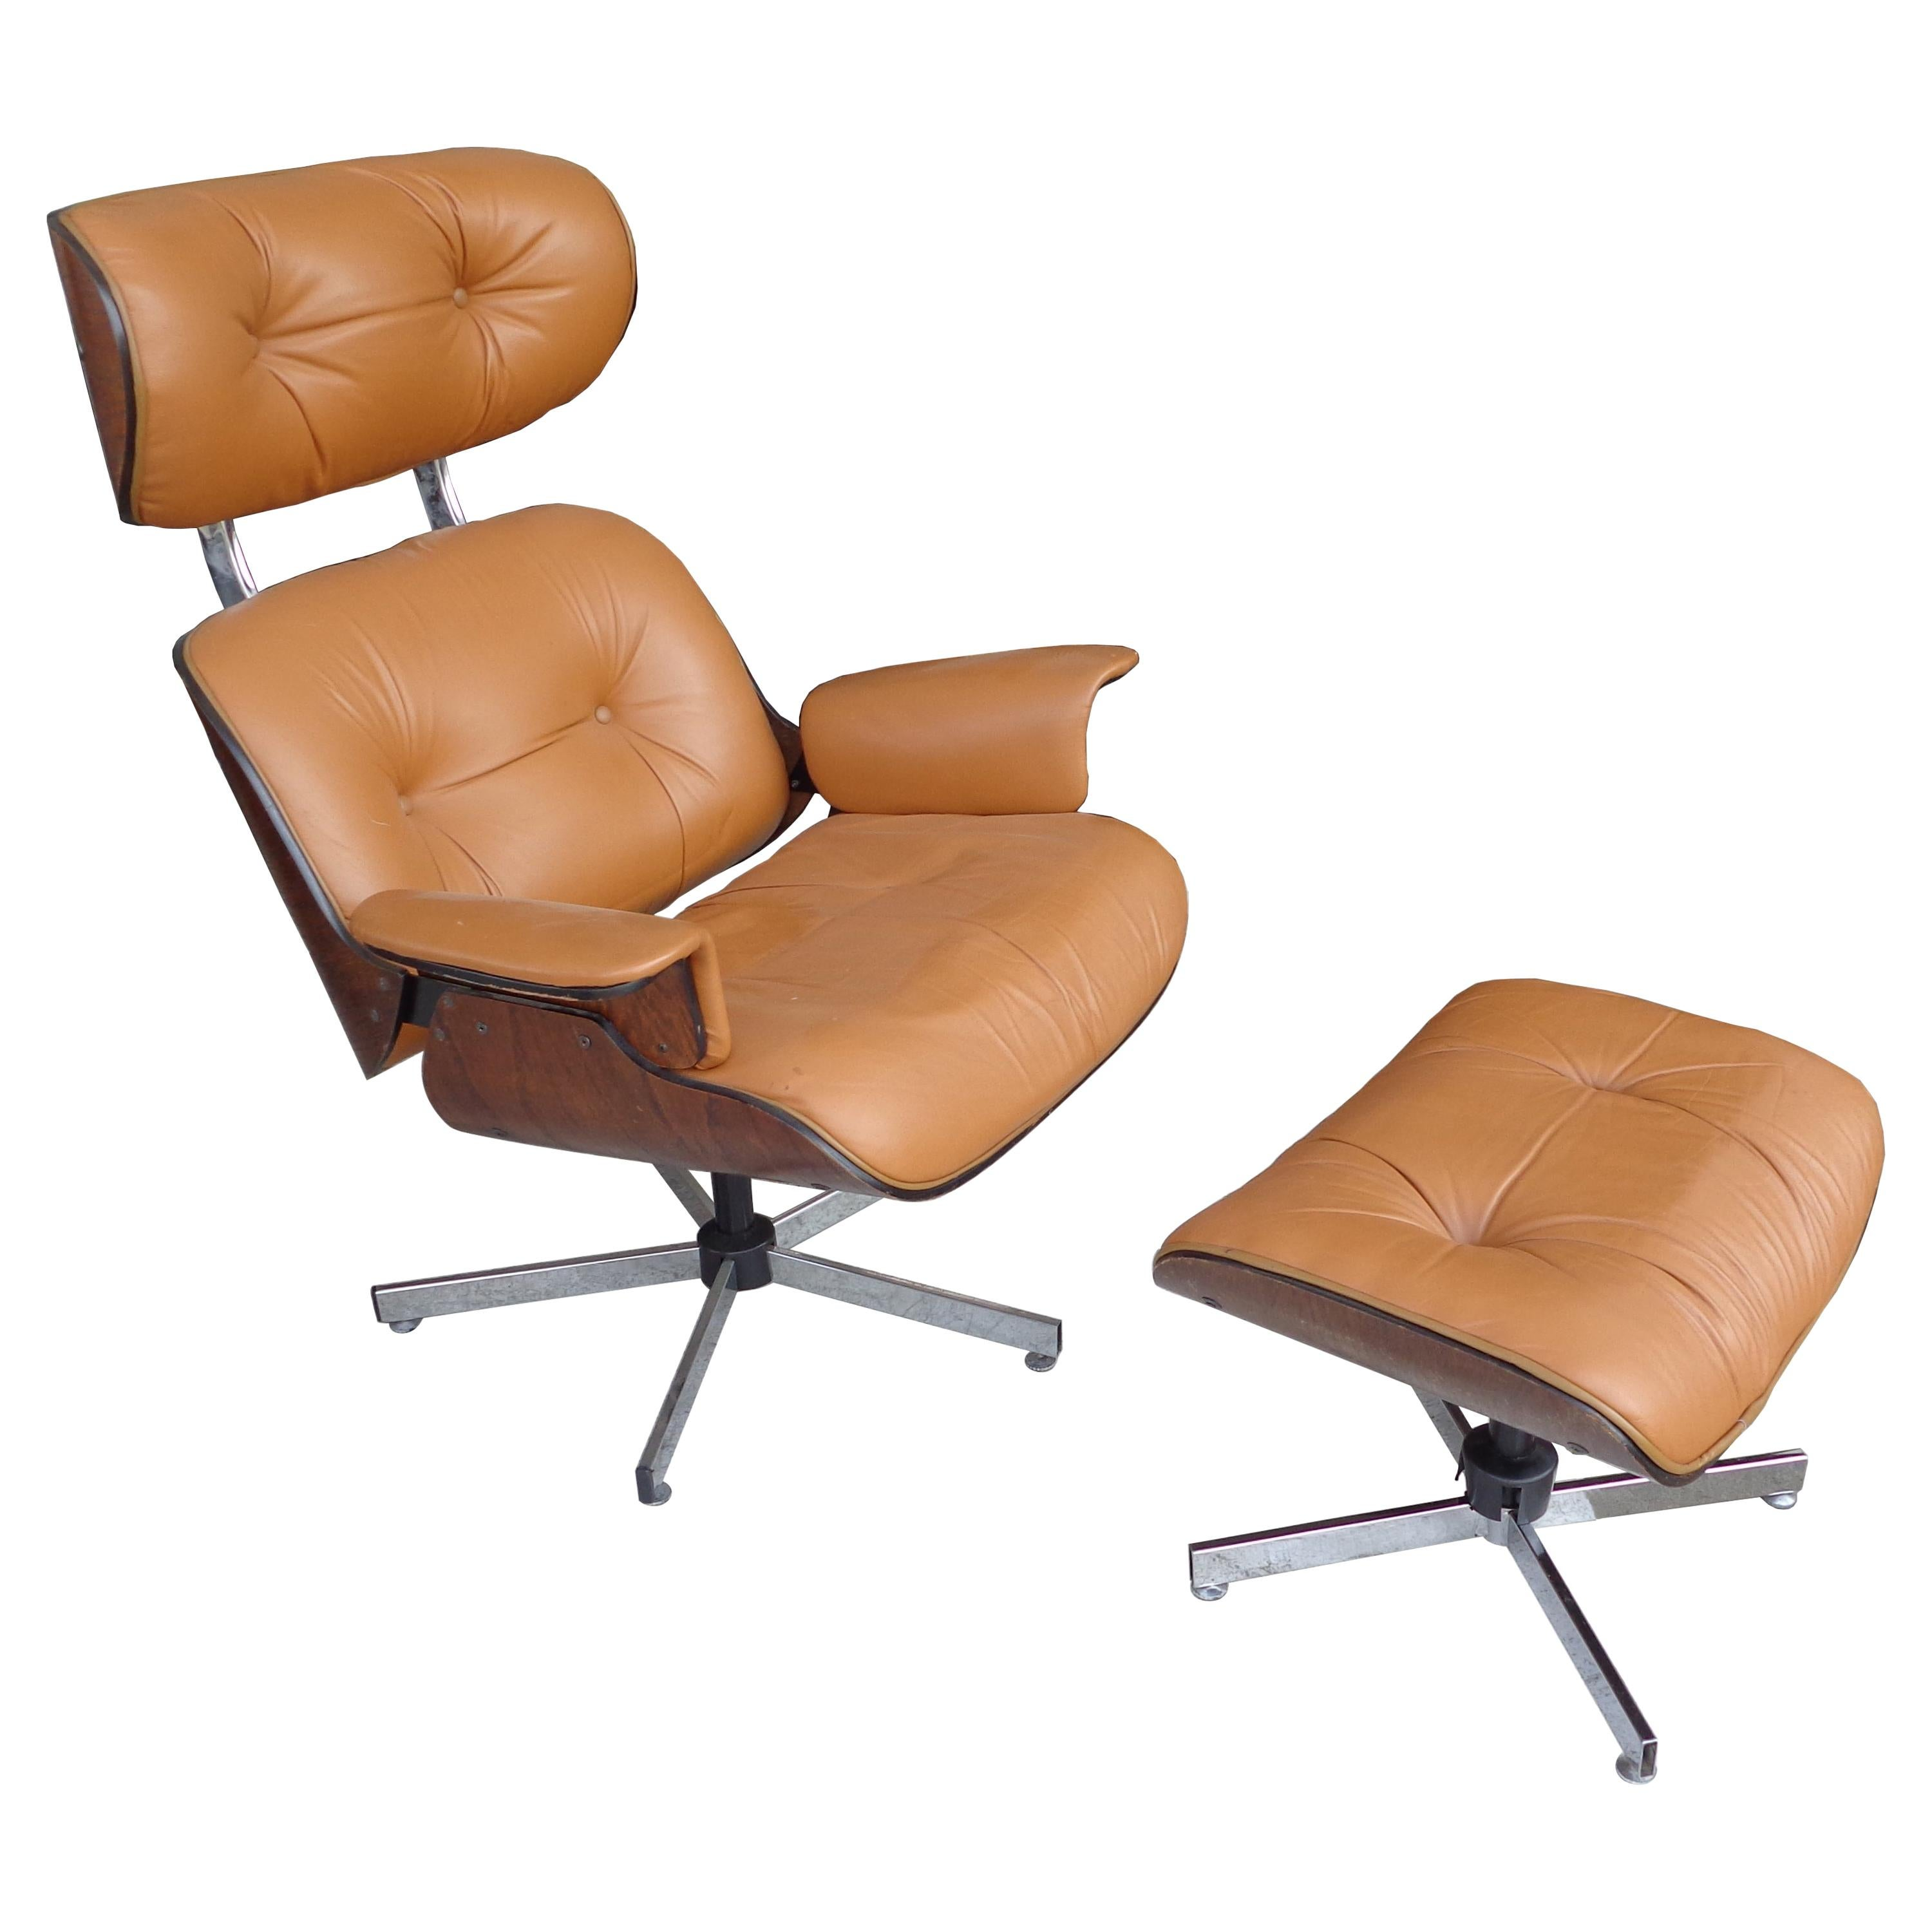 Vintage Plycraft Lounge Chair and Ottoman